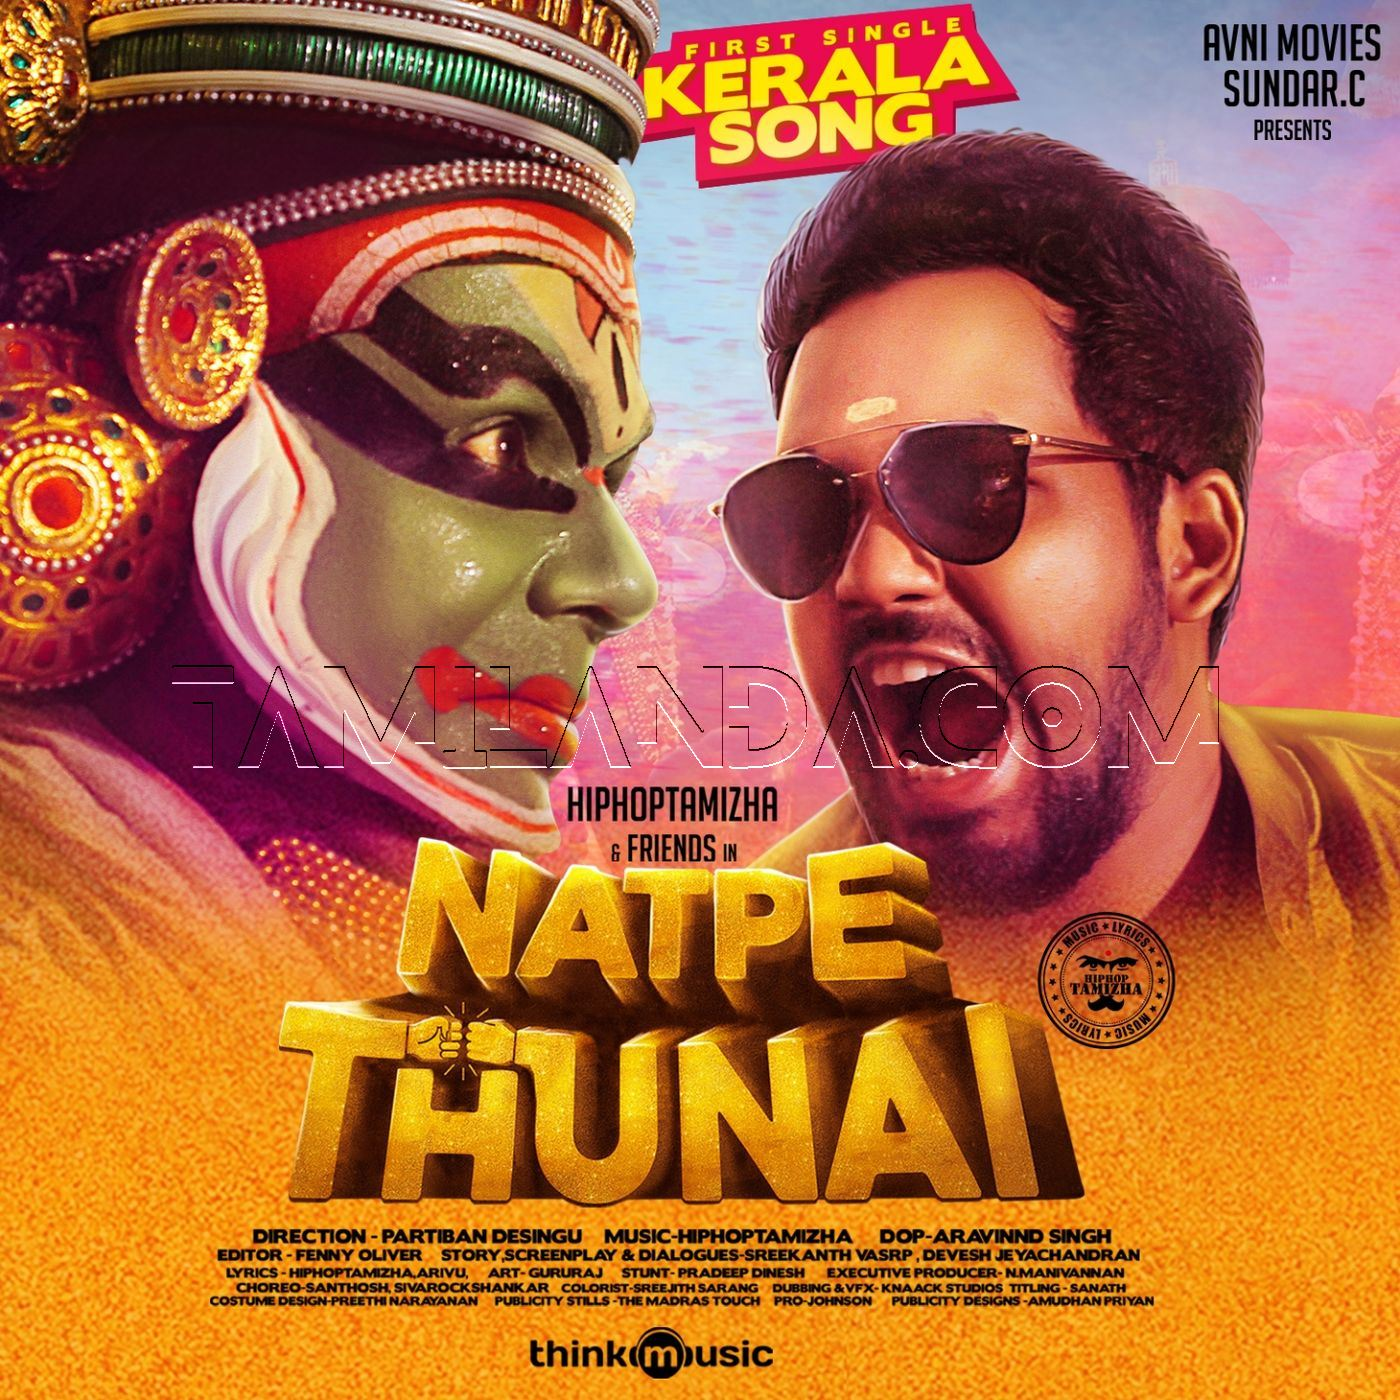 Natpe Thunai – Single FLAC Song (2018)